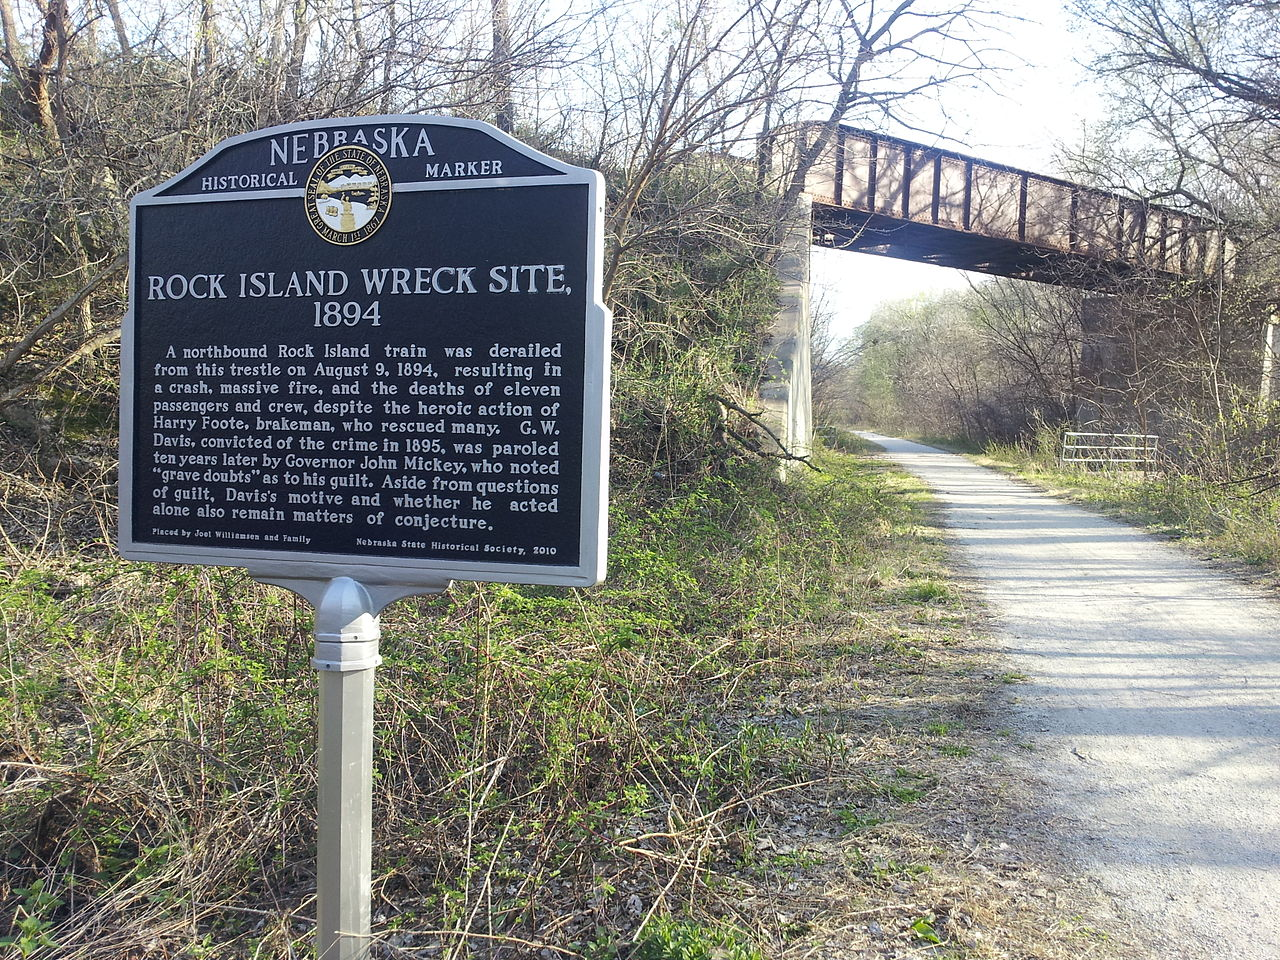 photo: Rock Island Wreck Site historical marker in the Wilderness Park. Photo by Crunchyskies.